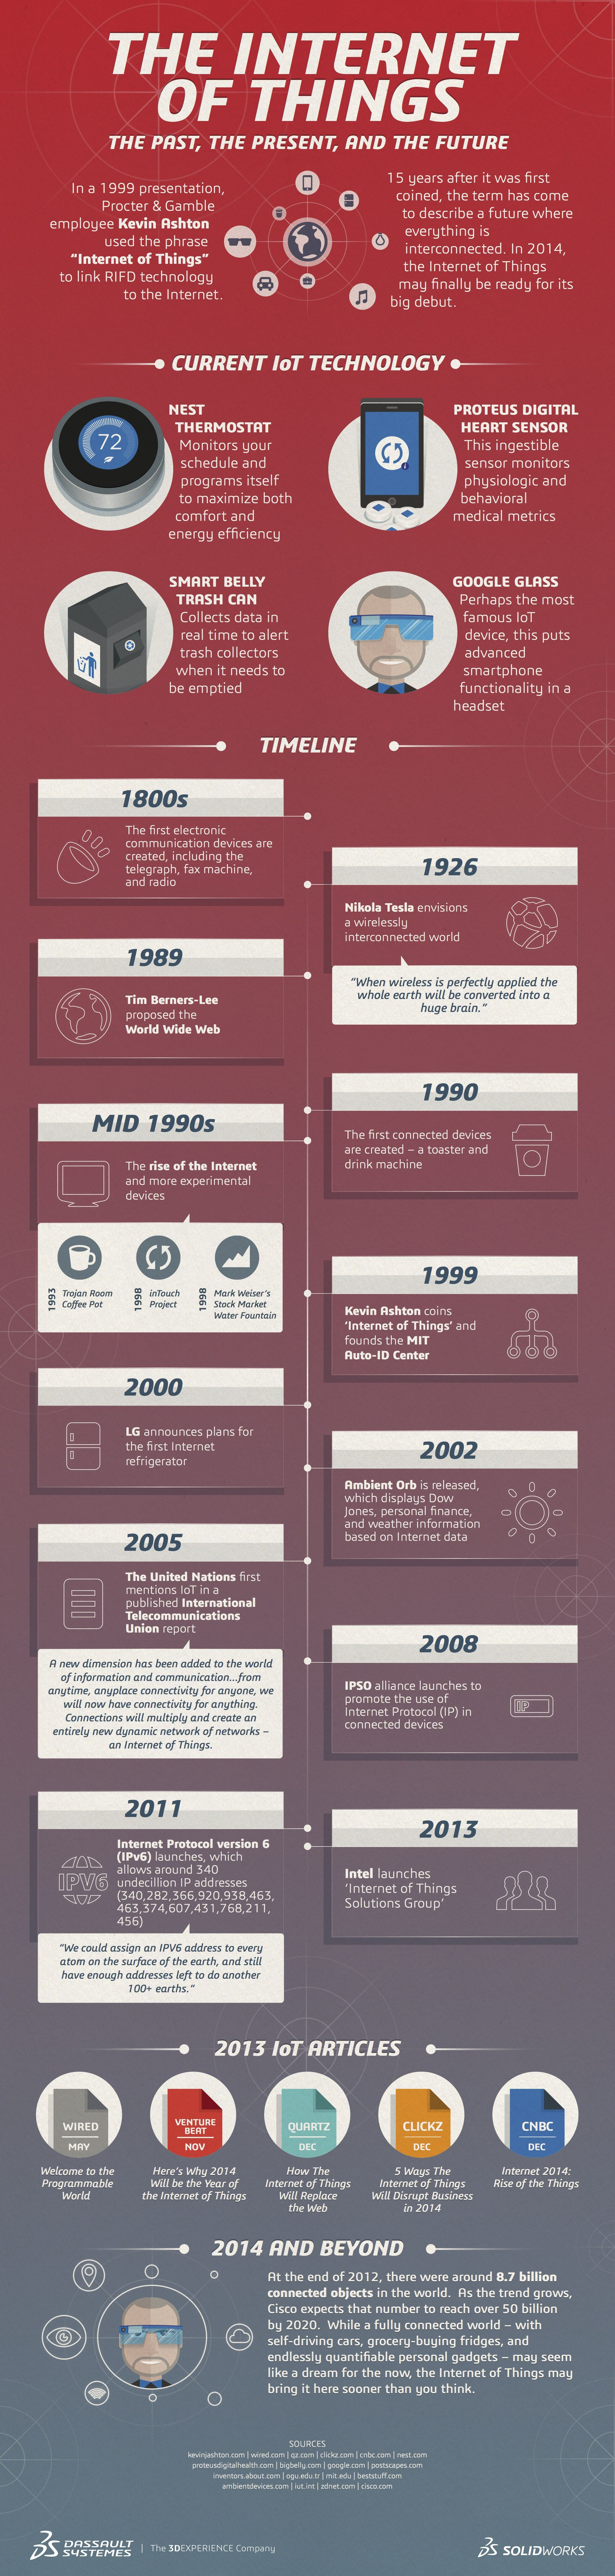 infographic on the internet of things